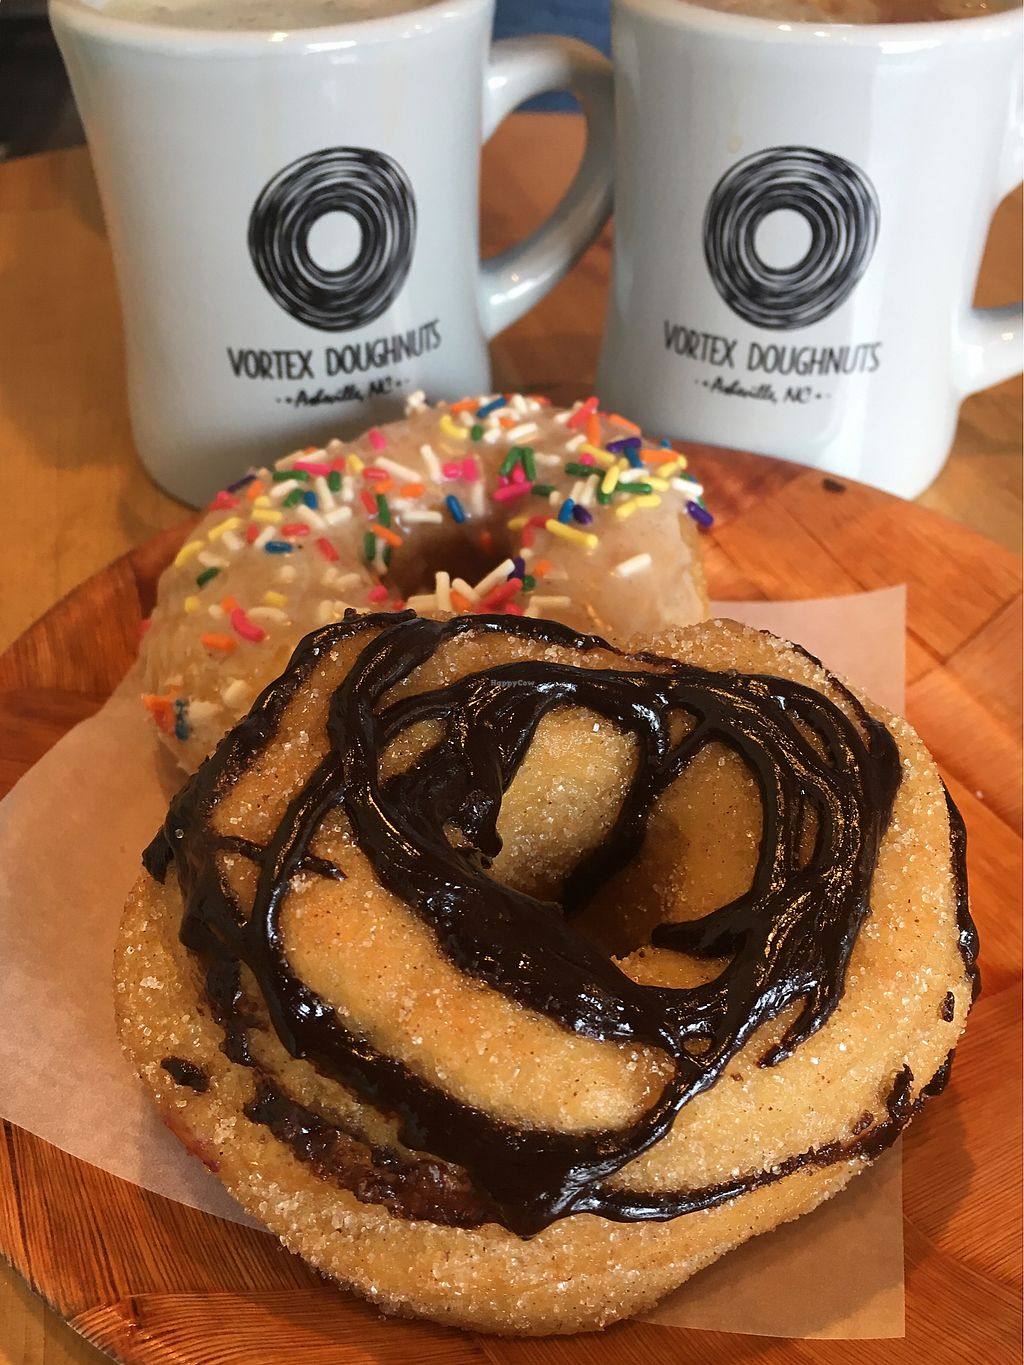 "Photo of Vortex Doughnuts  by <a href=""/members/profile/Laura1G2C"">Laura1G2C</a> <br/>The Vortex Doughnut  <br/> April 18, 2018  - <a href='/contact/abuse/image/61456/387452'>Report</a>"